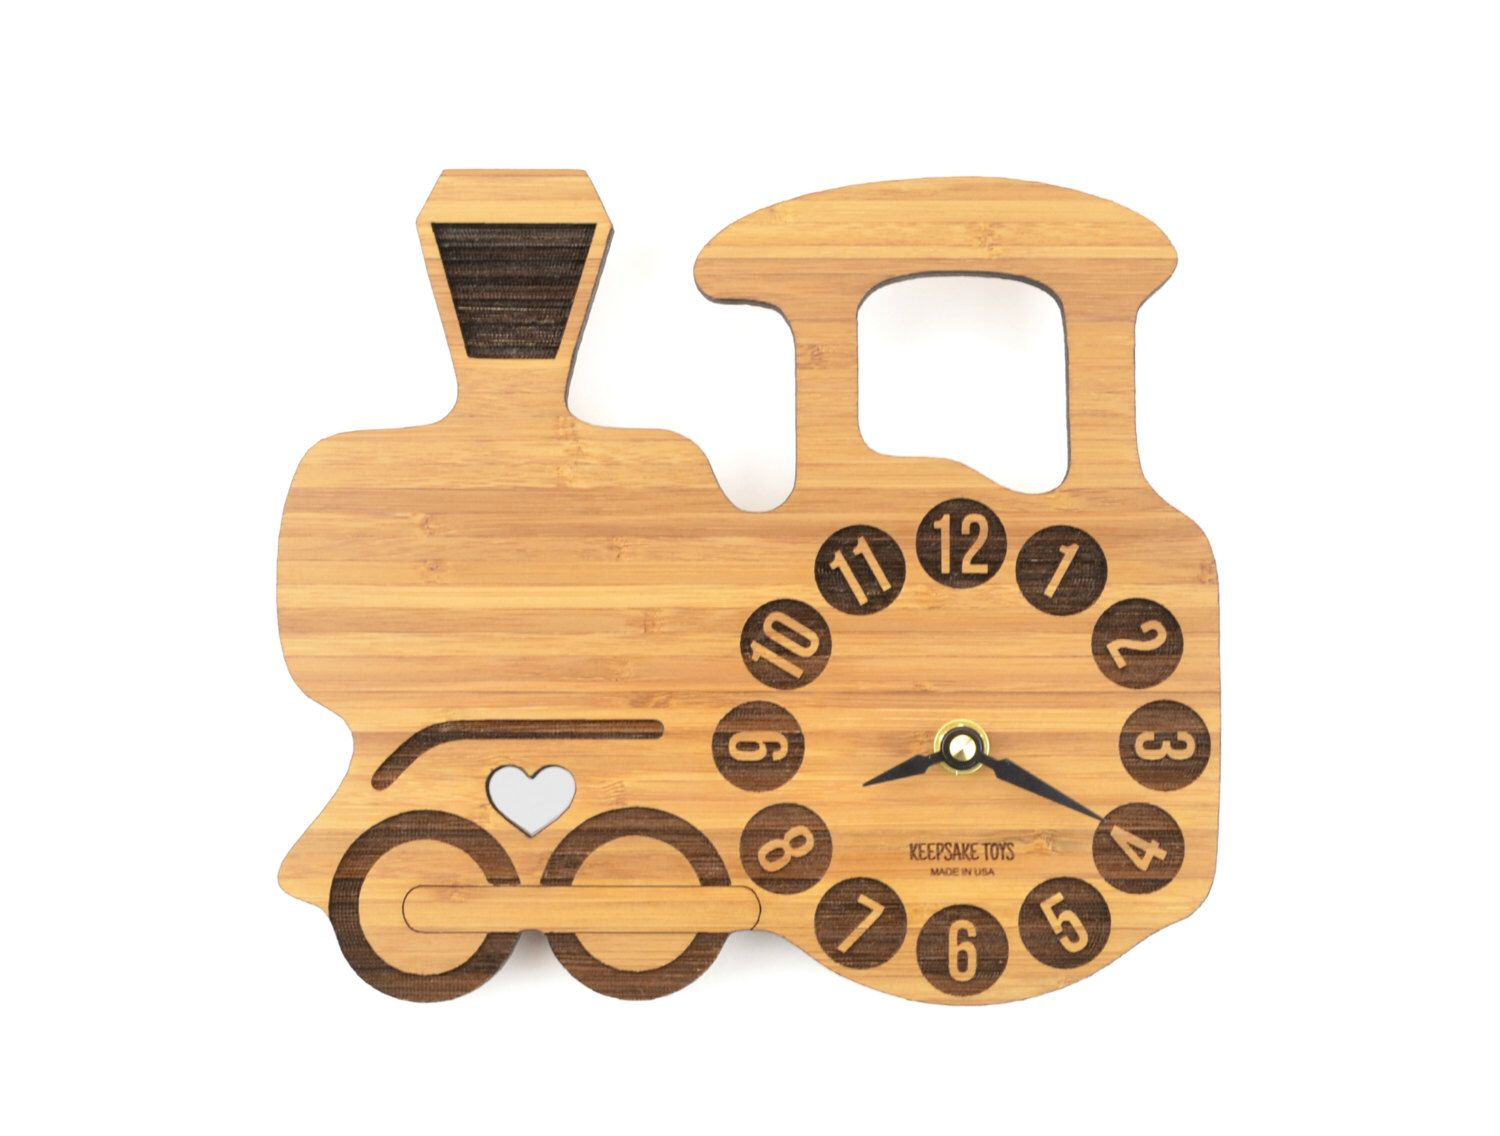 Wooden Train Clock, Bamboo Clock for Boys' Rooms, Baby Nursery Decor, Clock with Silent Motor, Eco-Friendly Wood Clock by KeepsakeToys on Etsy https://www.etsy.com/listing/169445442/wooden-train-clock-bamboo-clock-for-boys